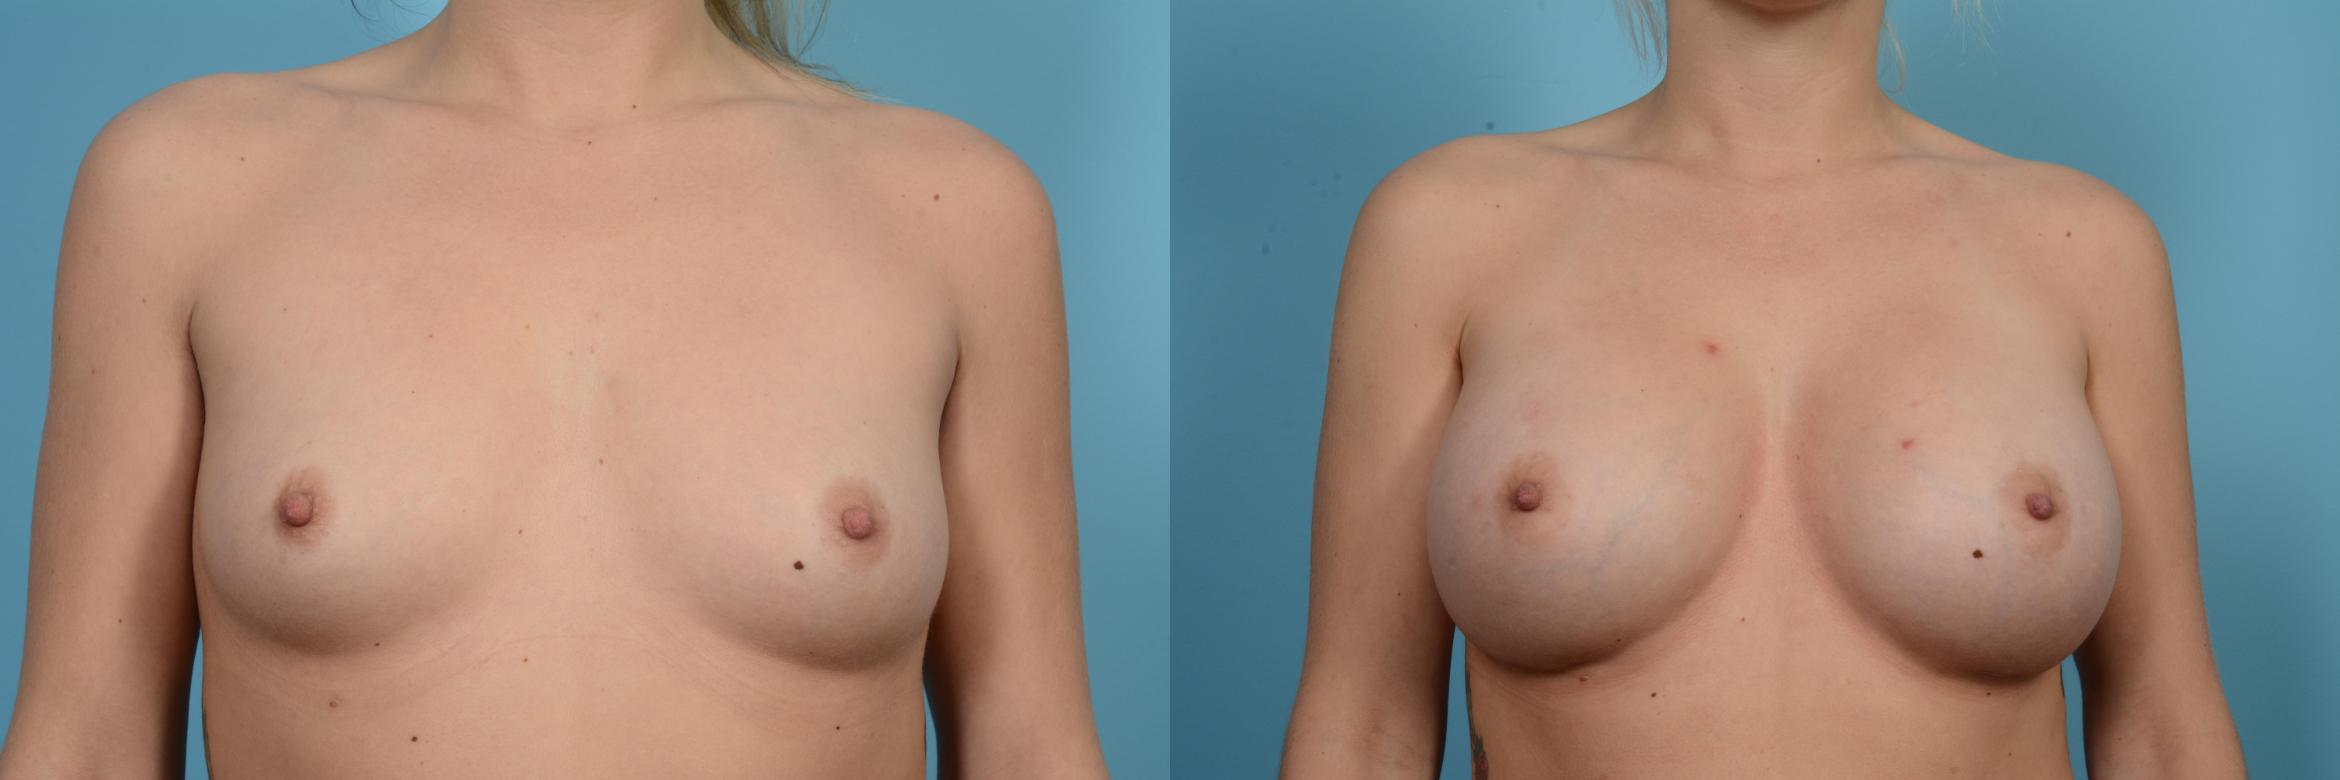 Breast Augmentation Case 589 Before & After View #1 | Chicago, IL | TLKM Plastic Surgery